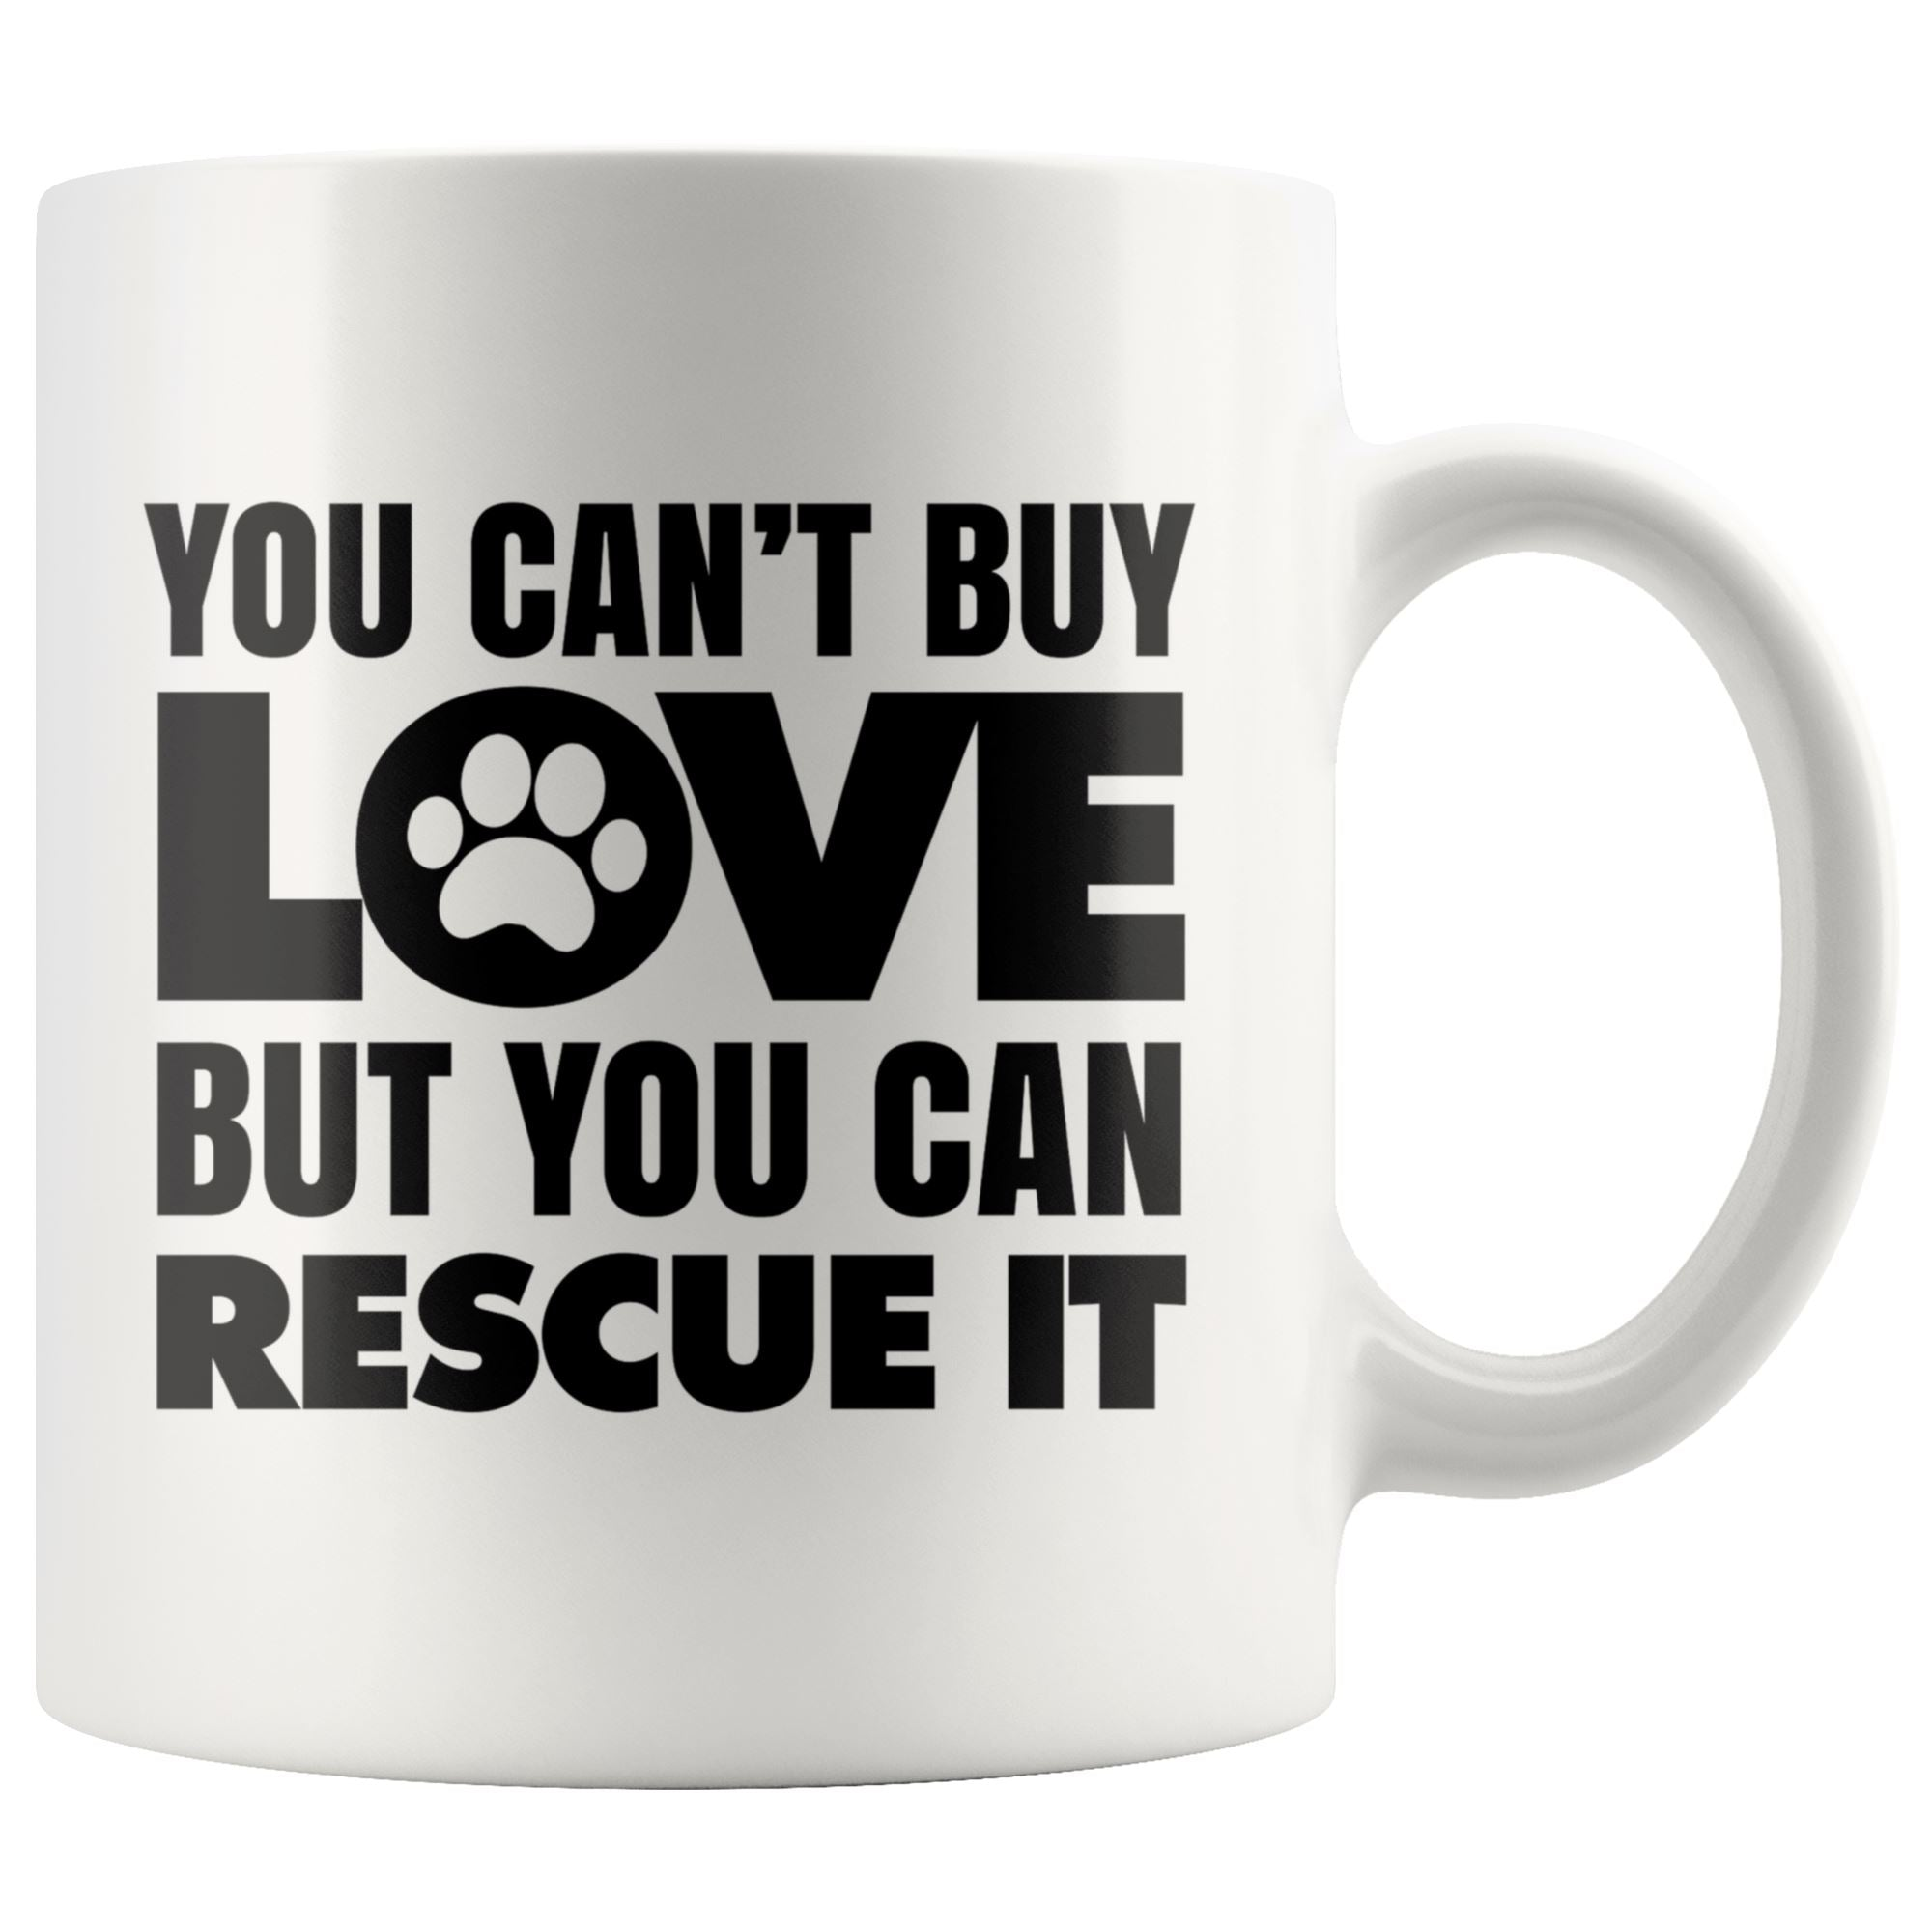 Can't Buy Love Drinkware teelaunch 11oz Mug